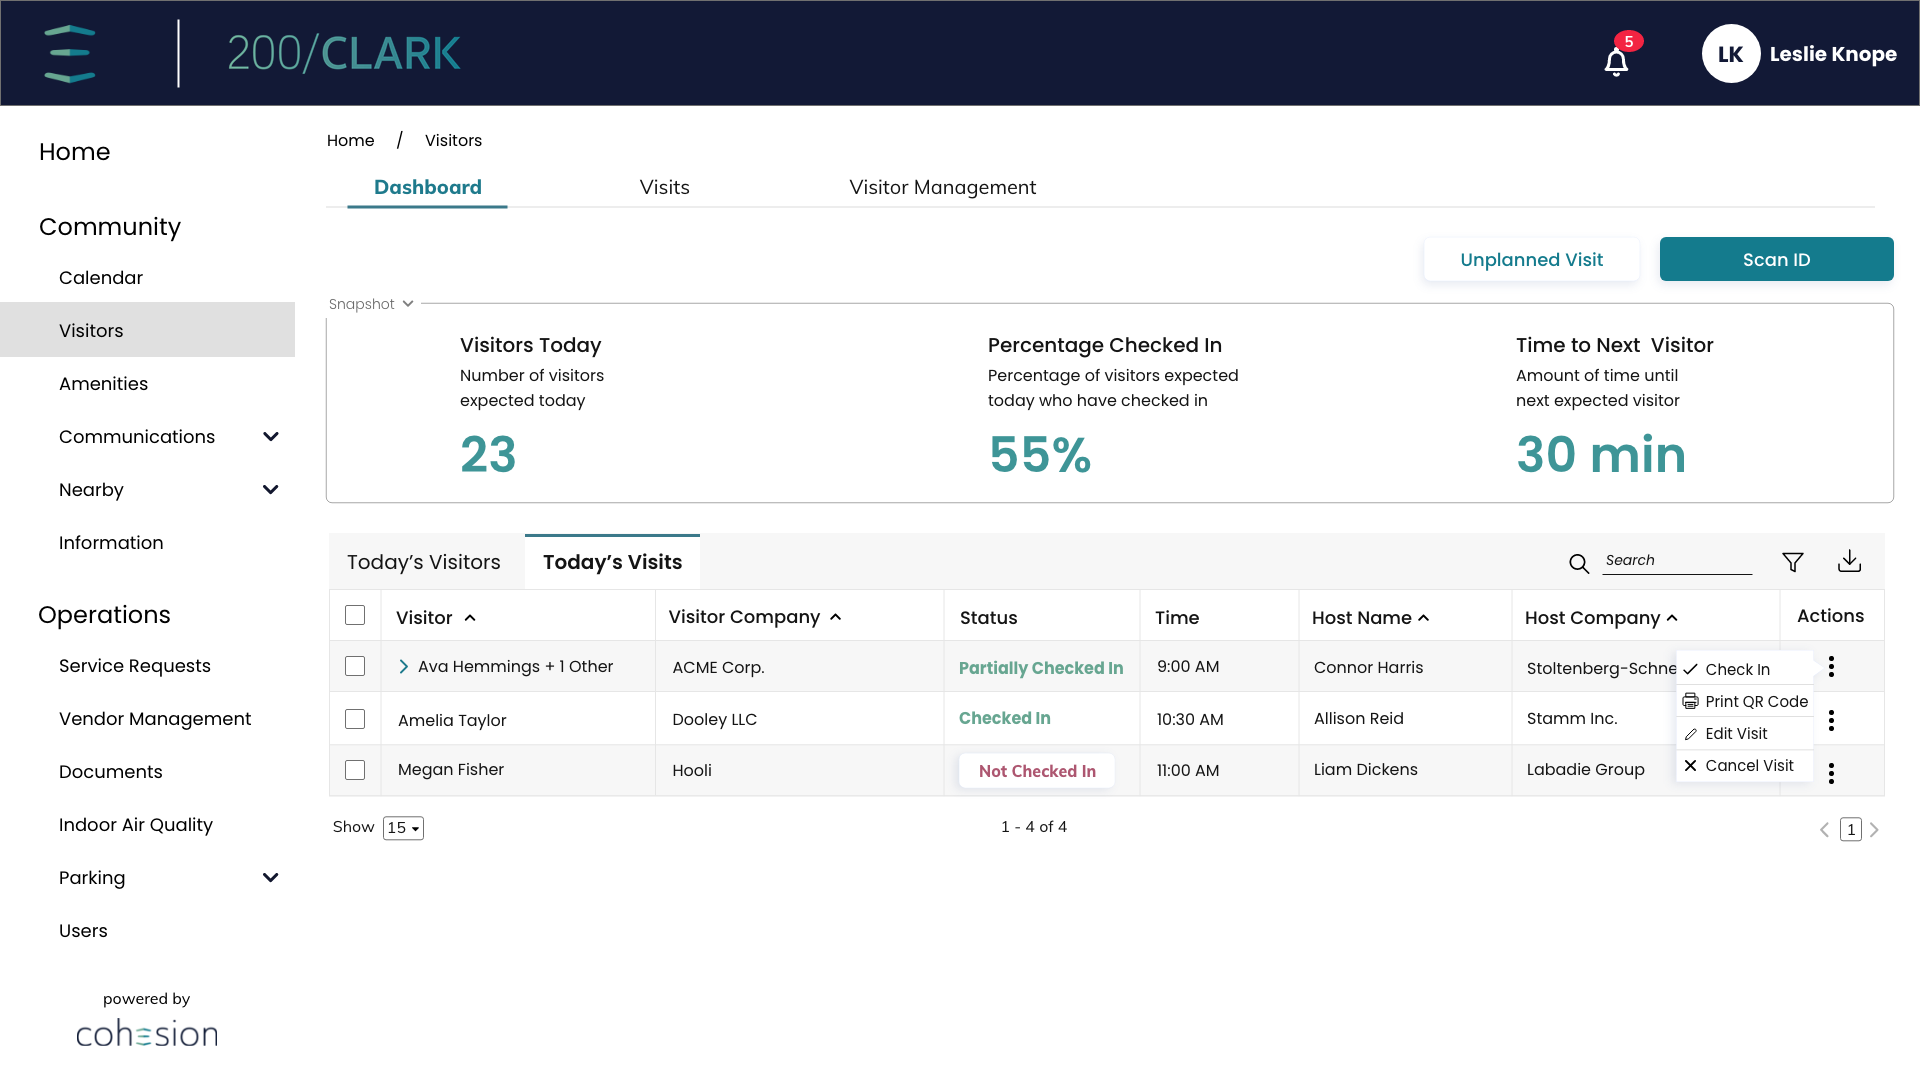 Tenant-Manager-Dashboard-Today's-Visitors